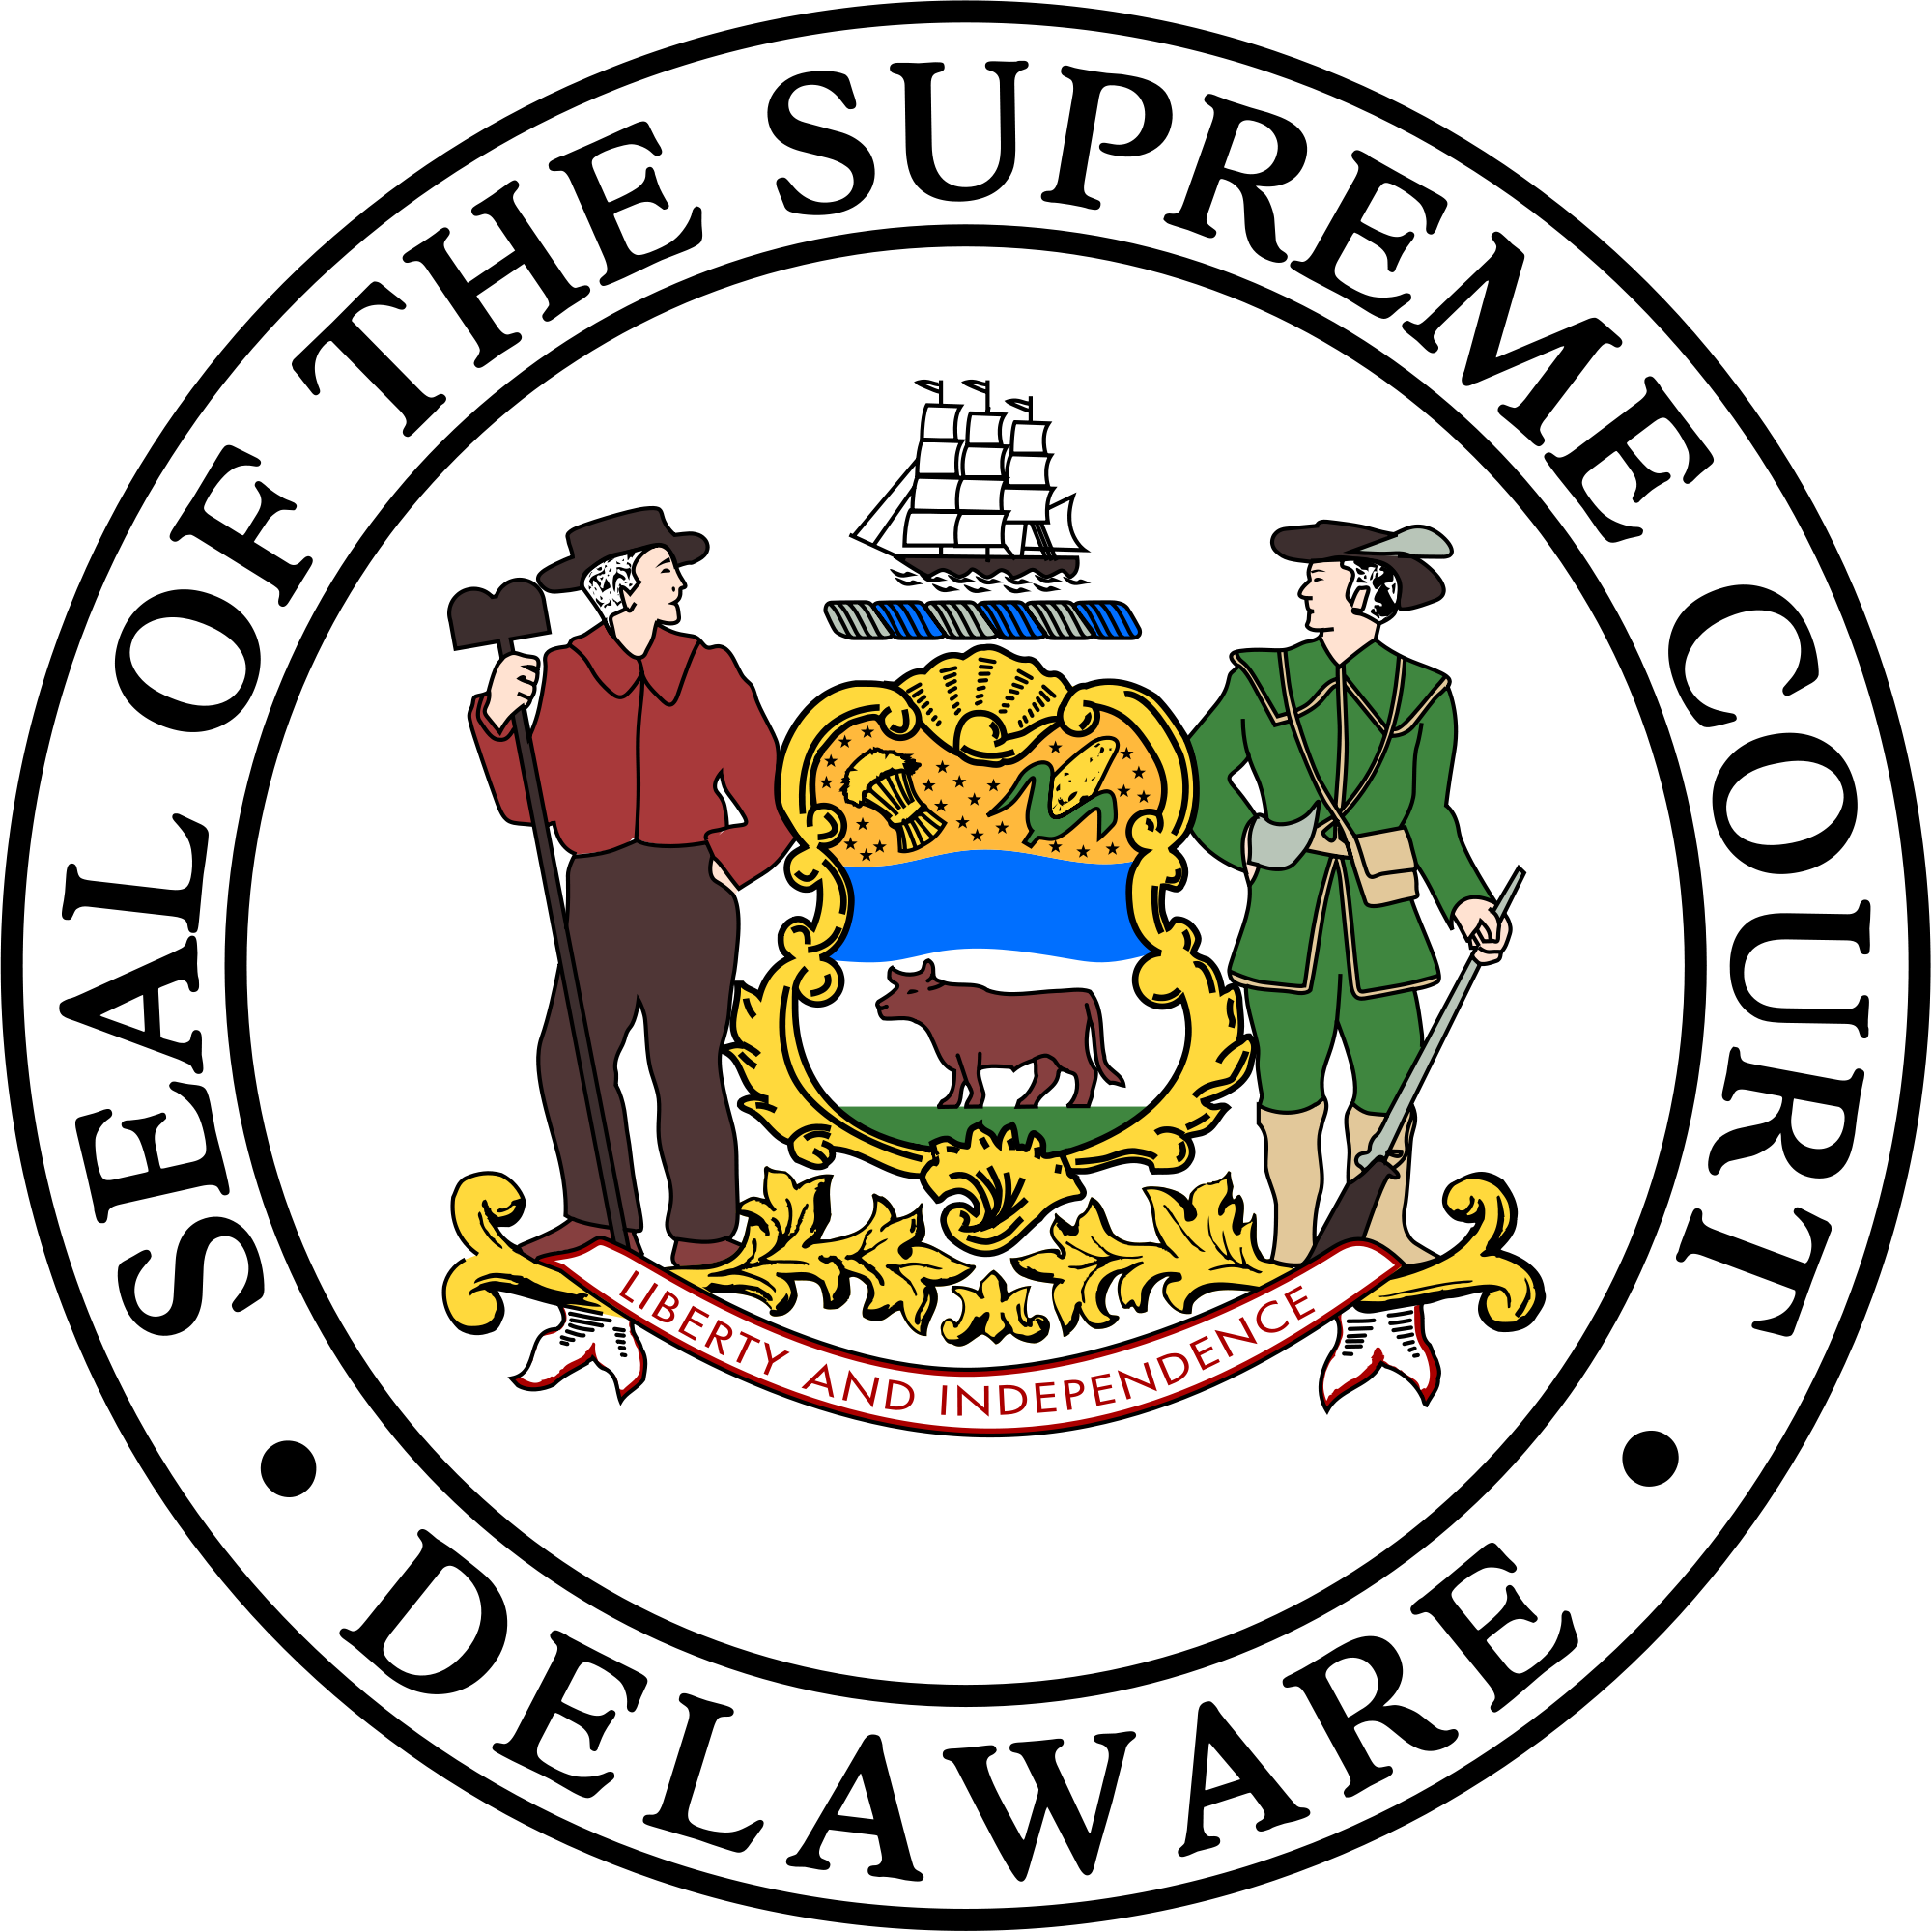 Court drawing bad. Delaware supreme says claims